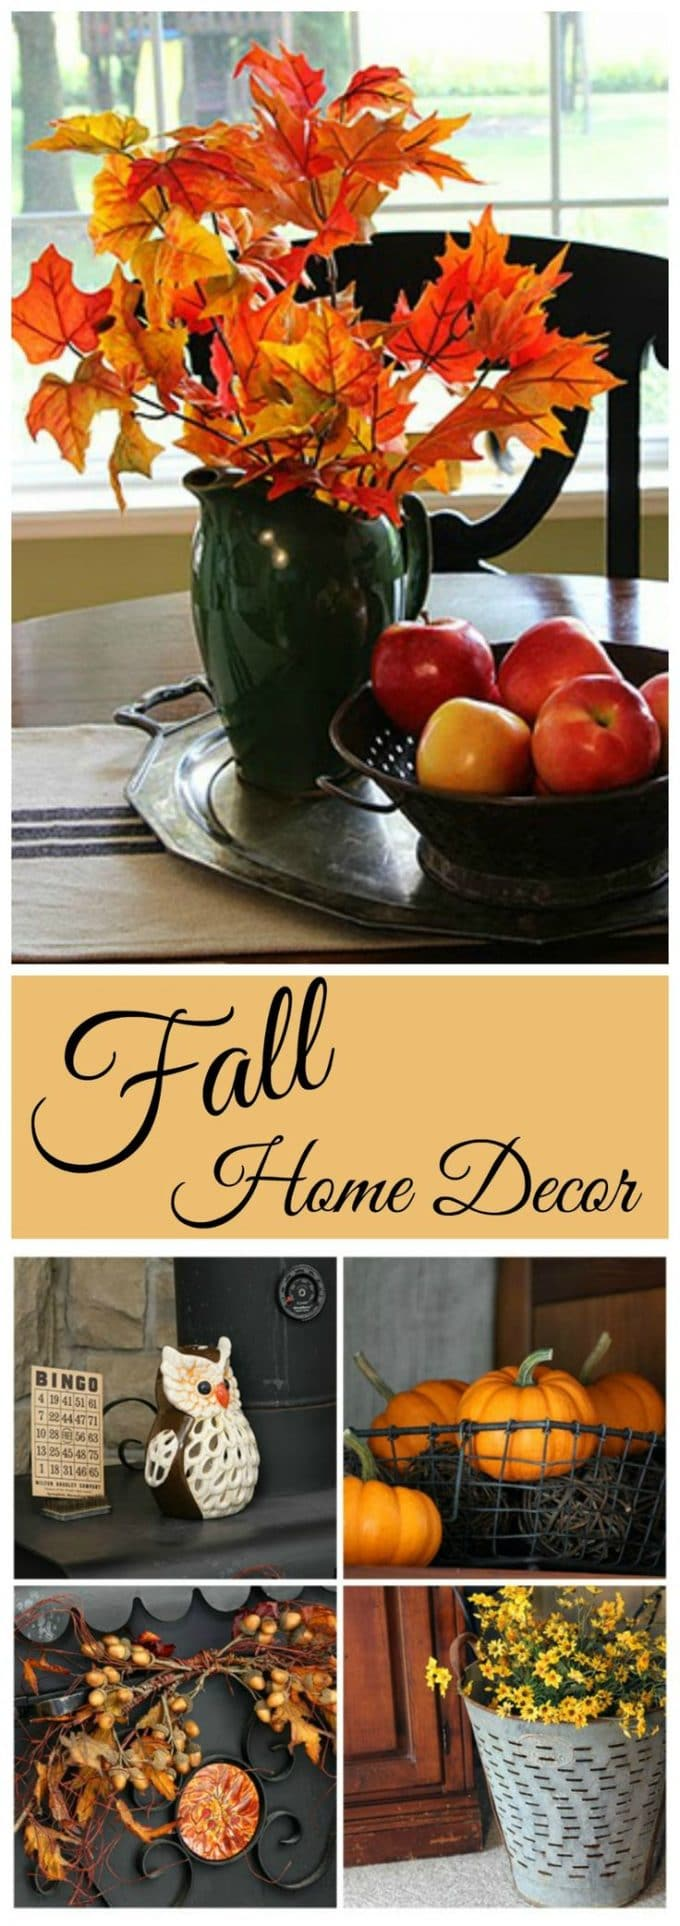 A fall home tour with a vintage flair!